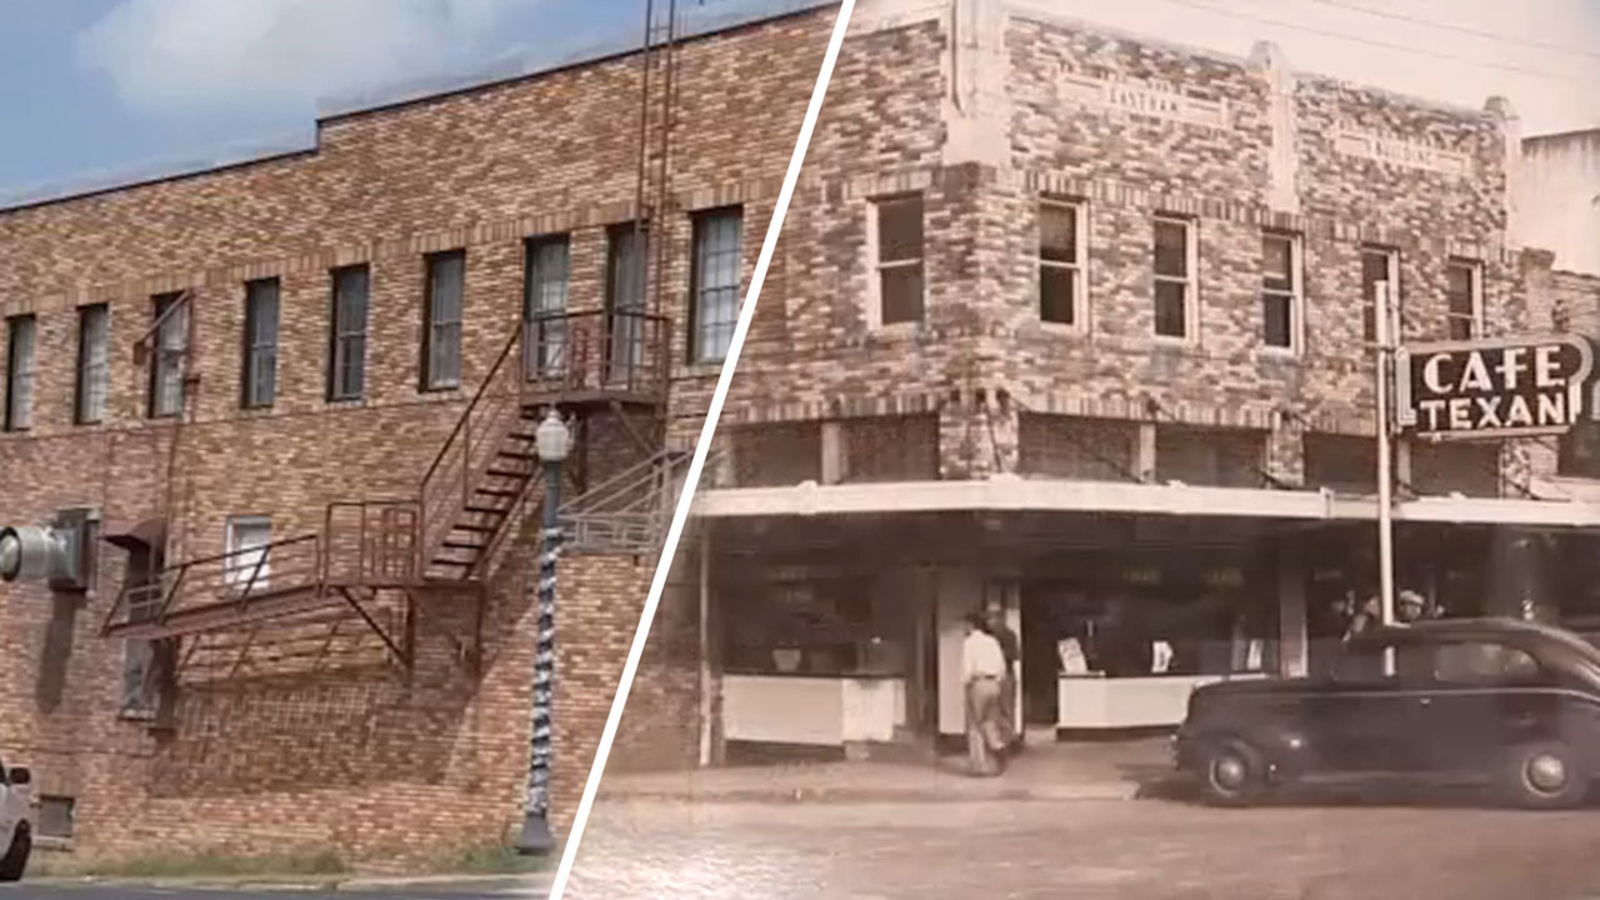 5314880 052319 ktrk cafe texan img jpg?w=1600.'